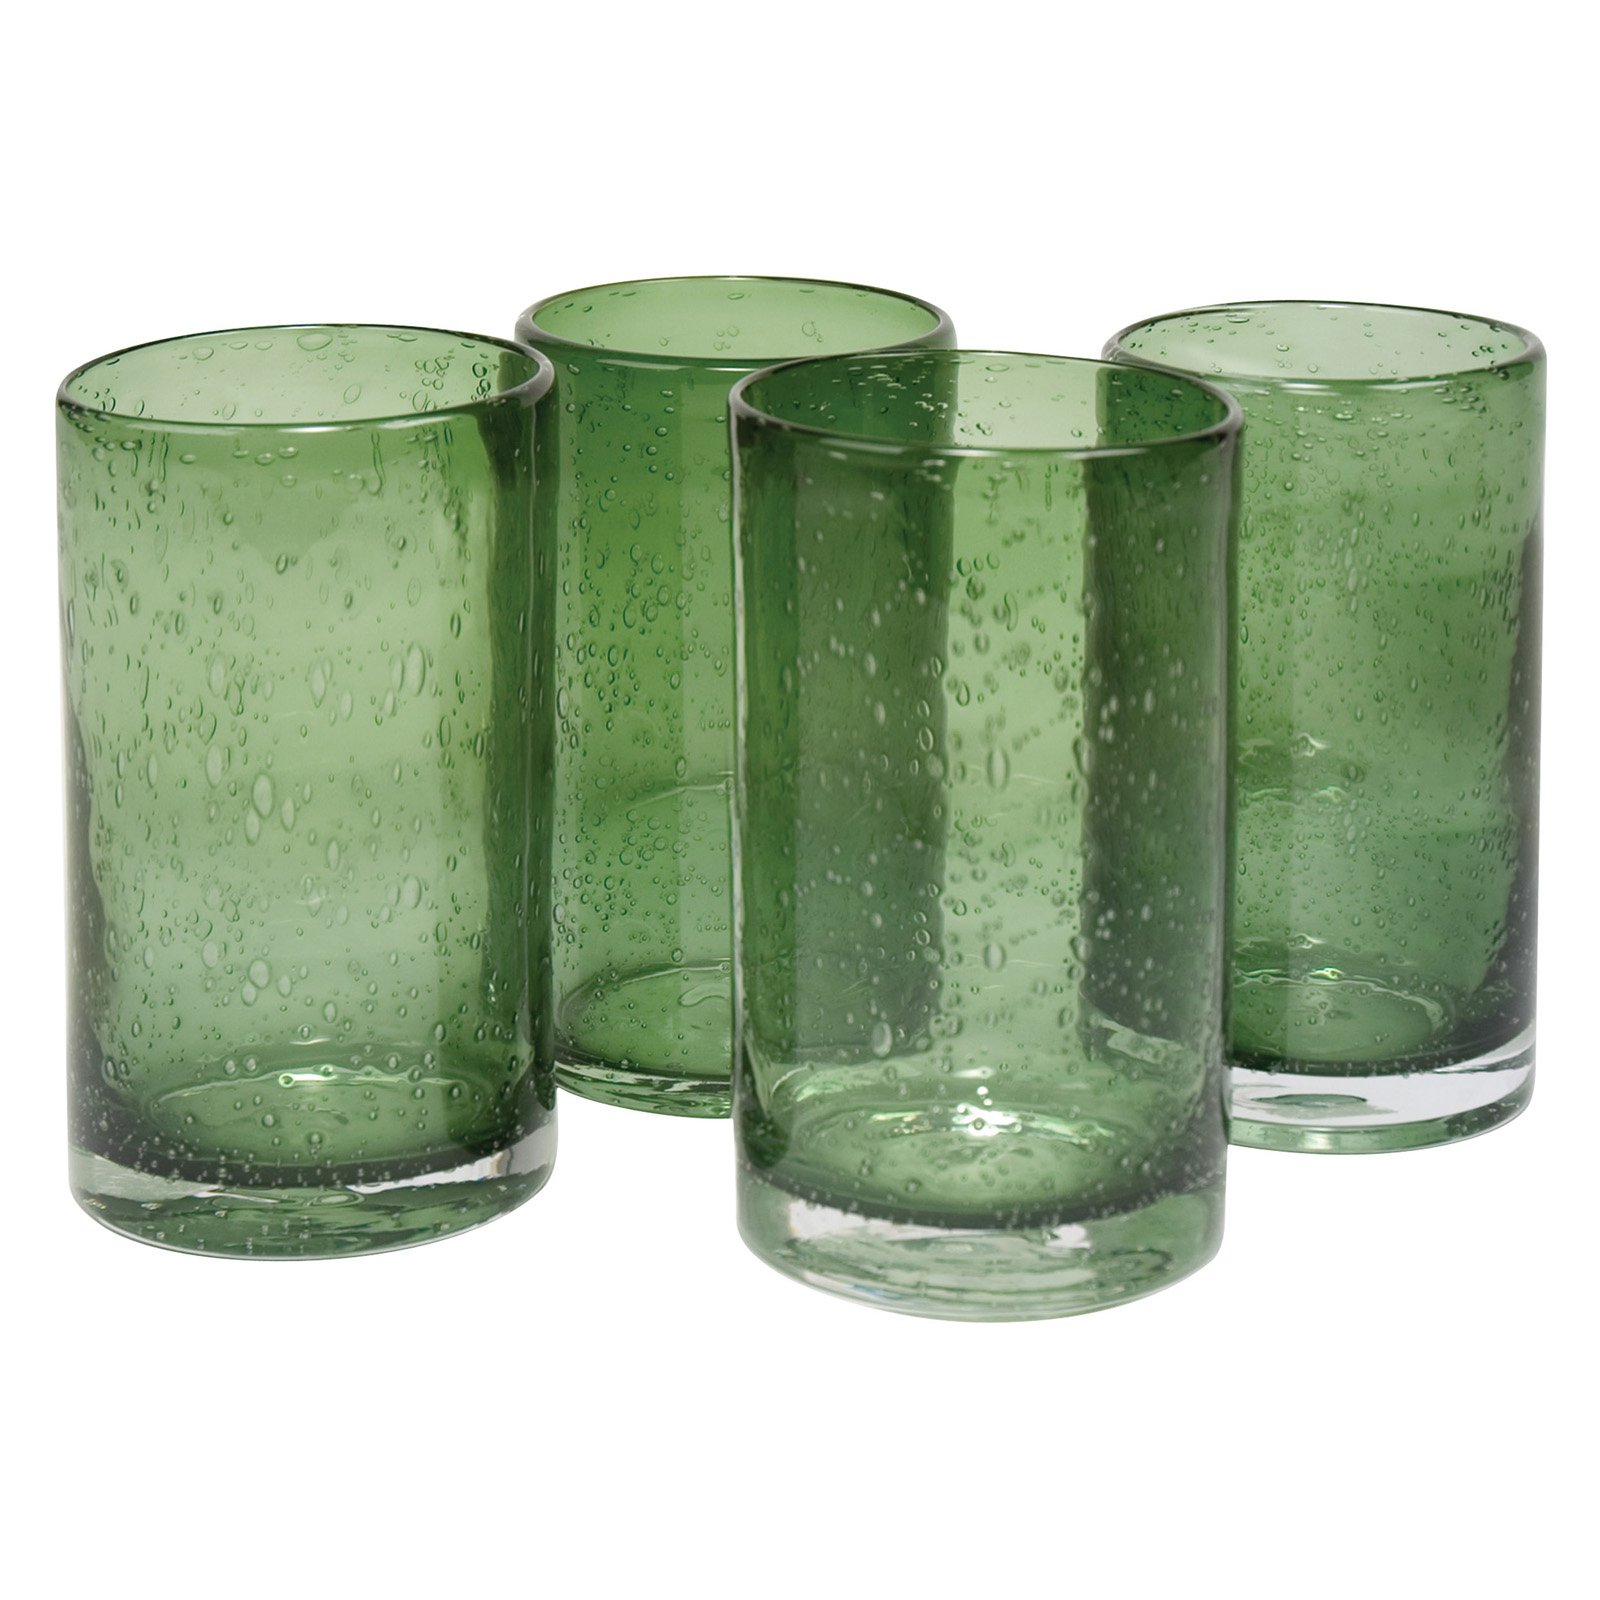 Artland Inc. Iris Sage HiBall Glasses - Set of 4